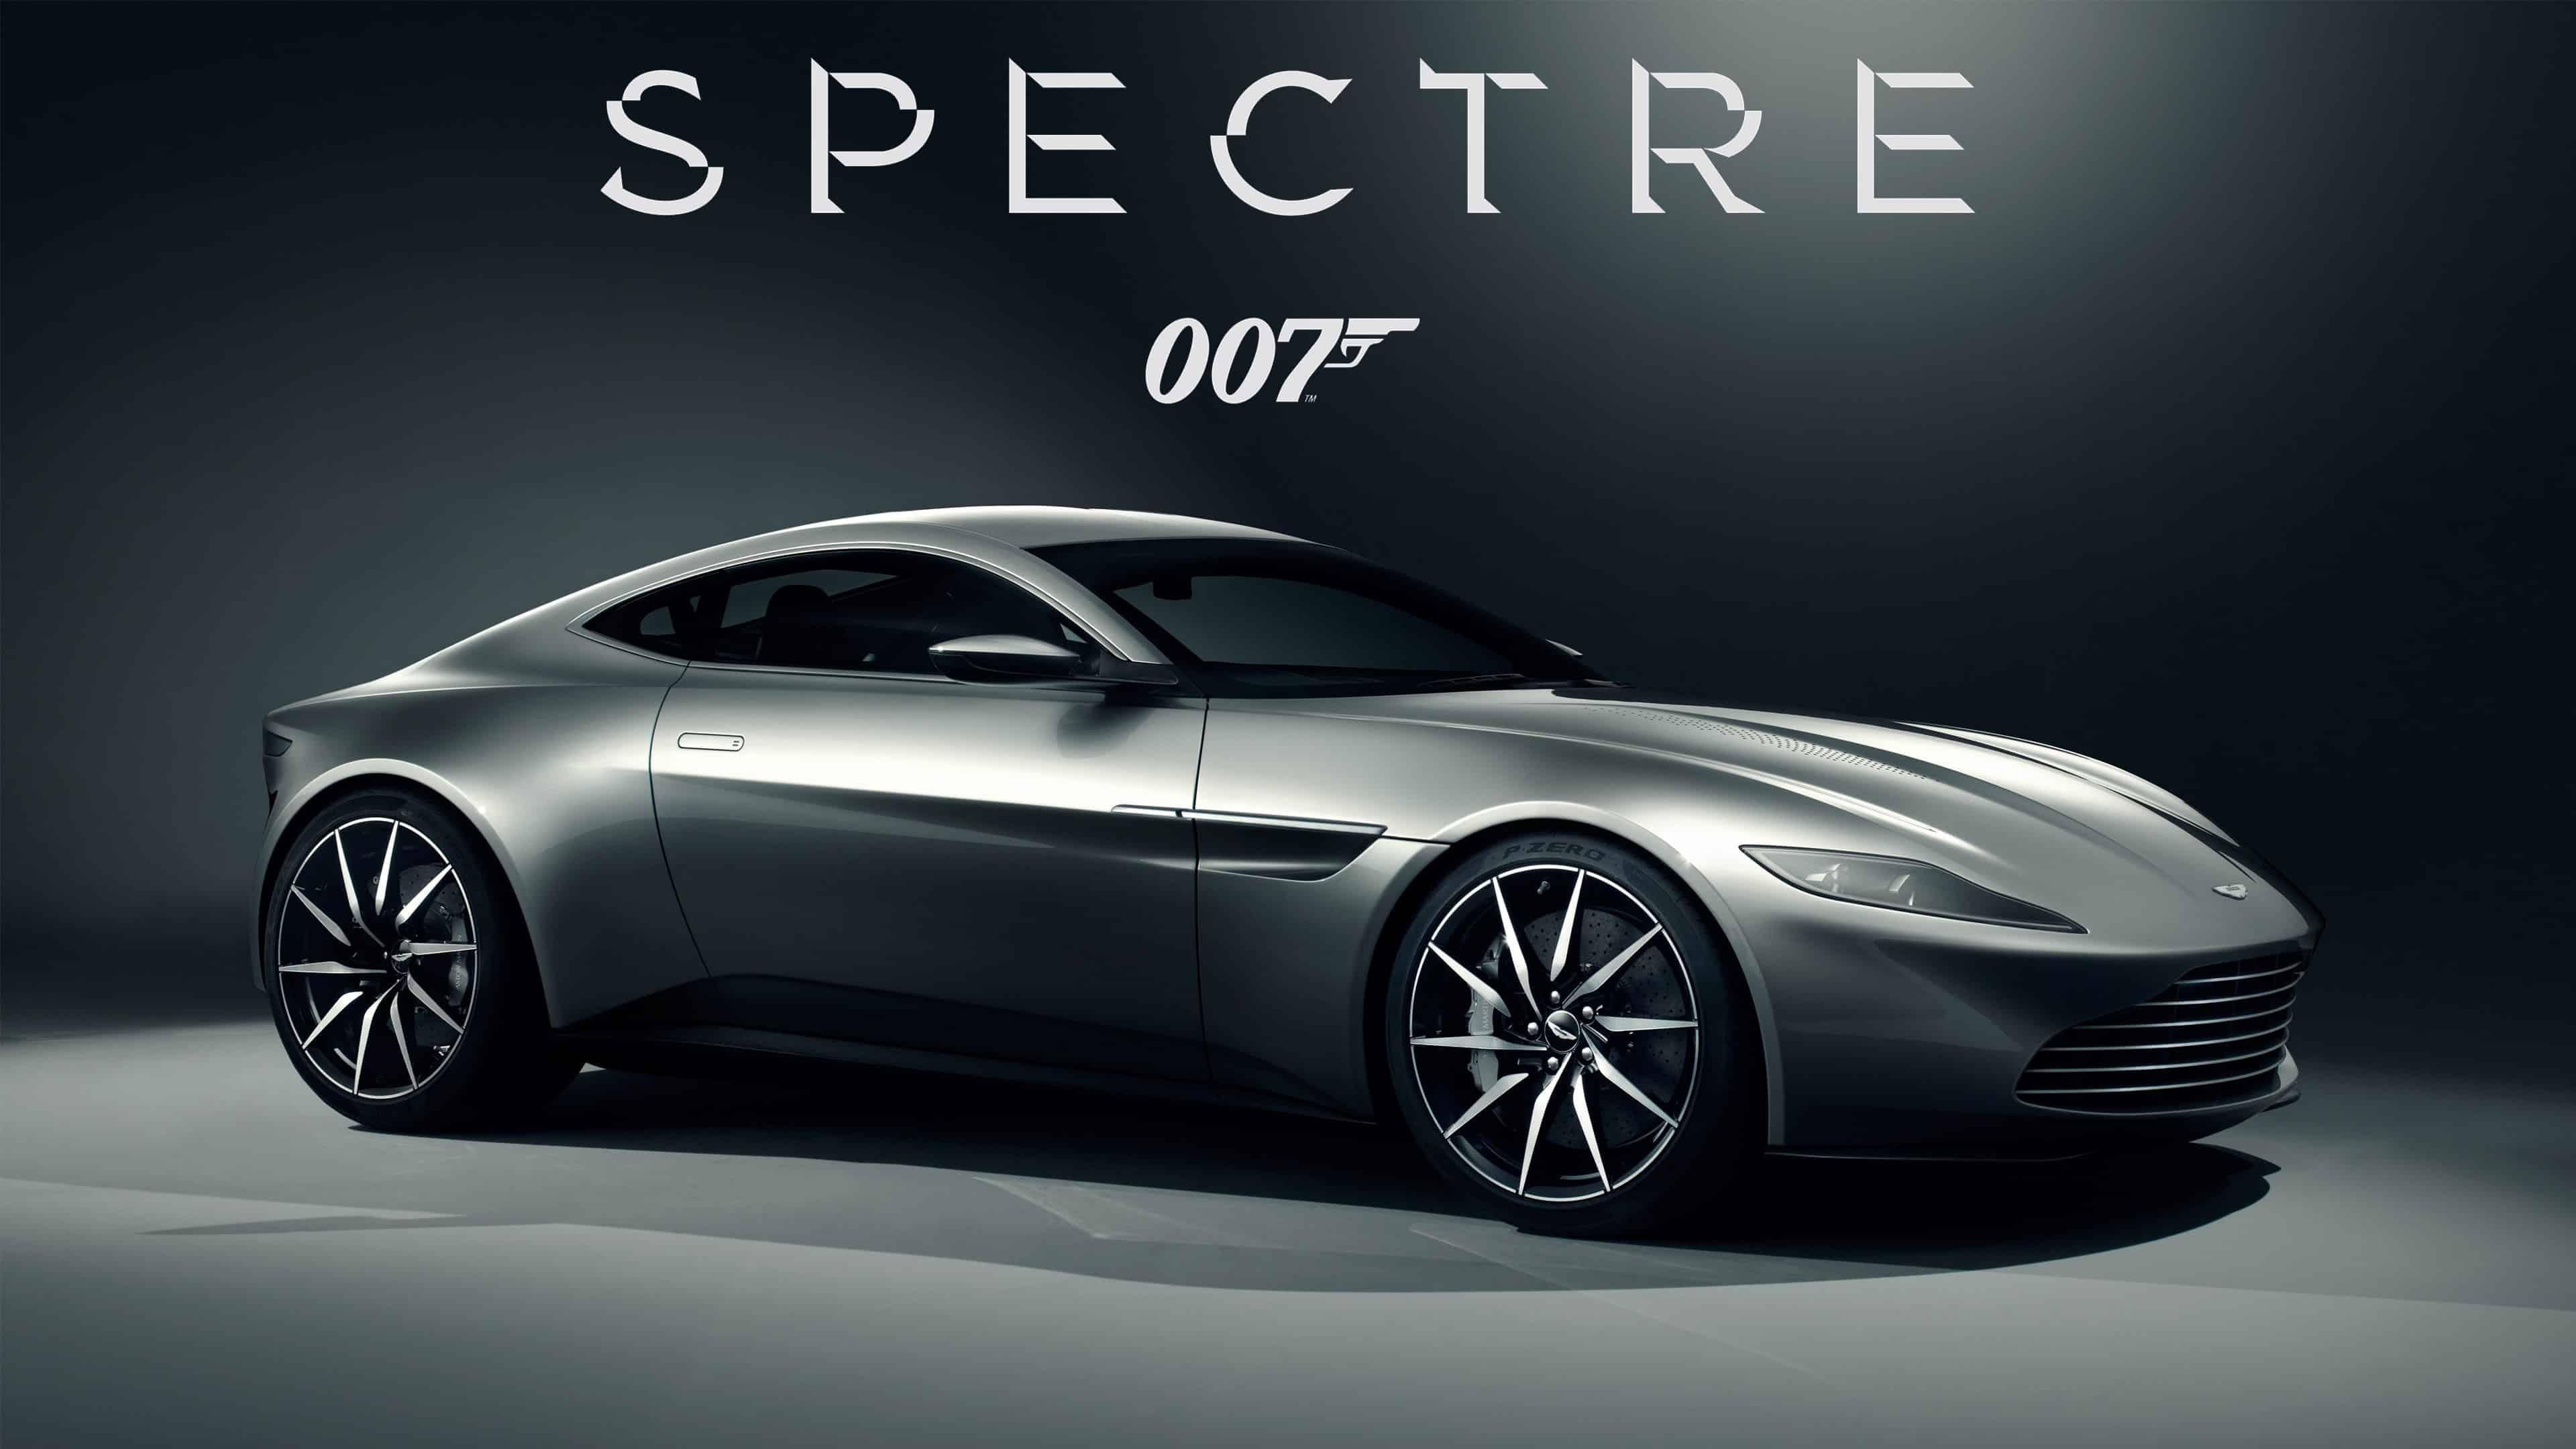 aston martin db10 james bond 007 spectre uhd 4k wallpaper